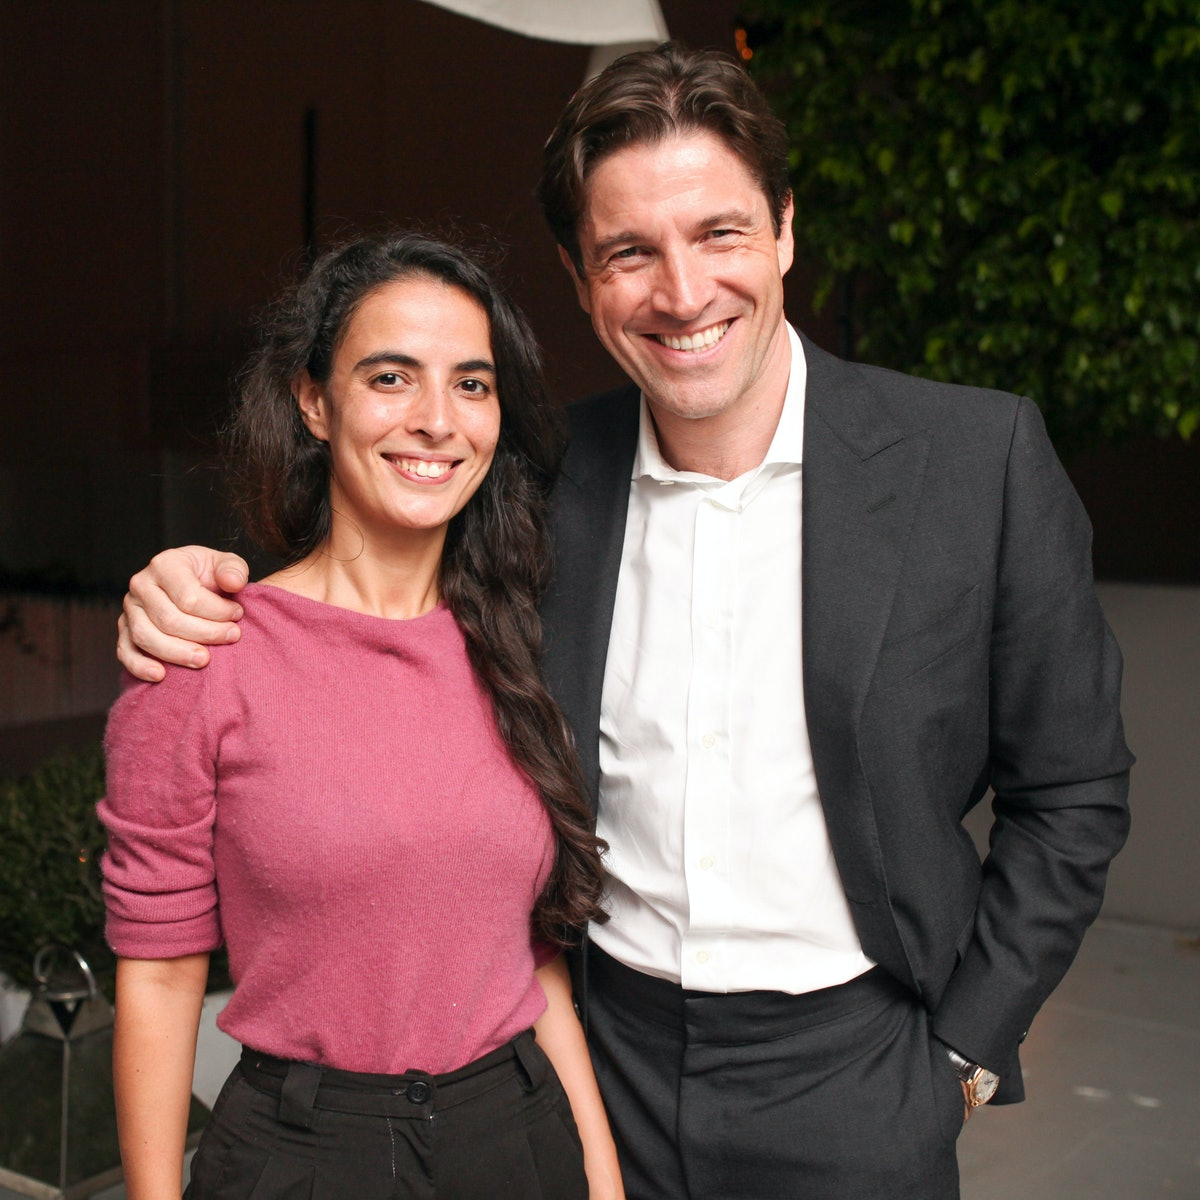 Frederic de Narp and Anissa Touati attend the Triangle Walks by BALLY party